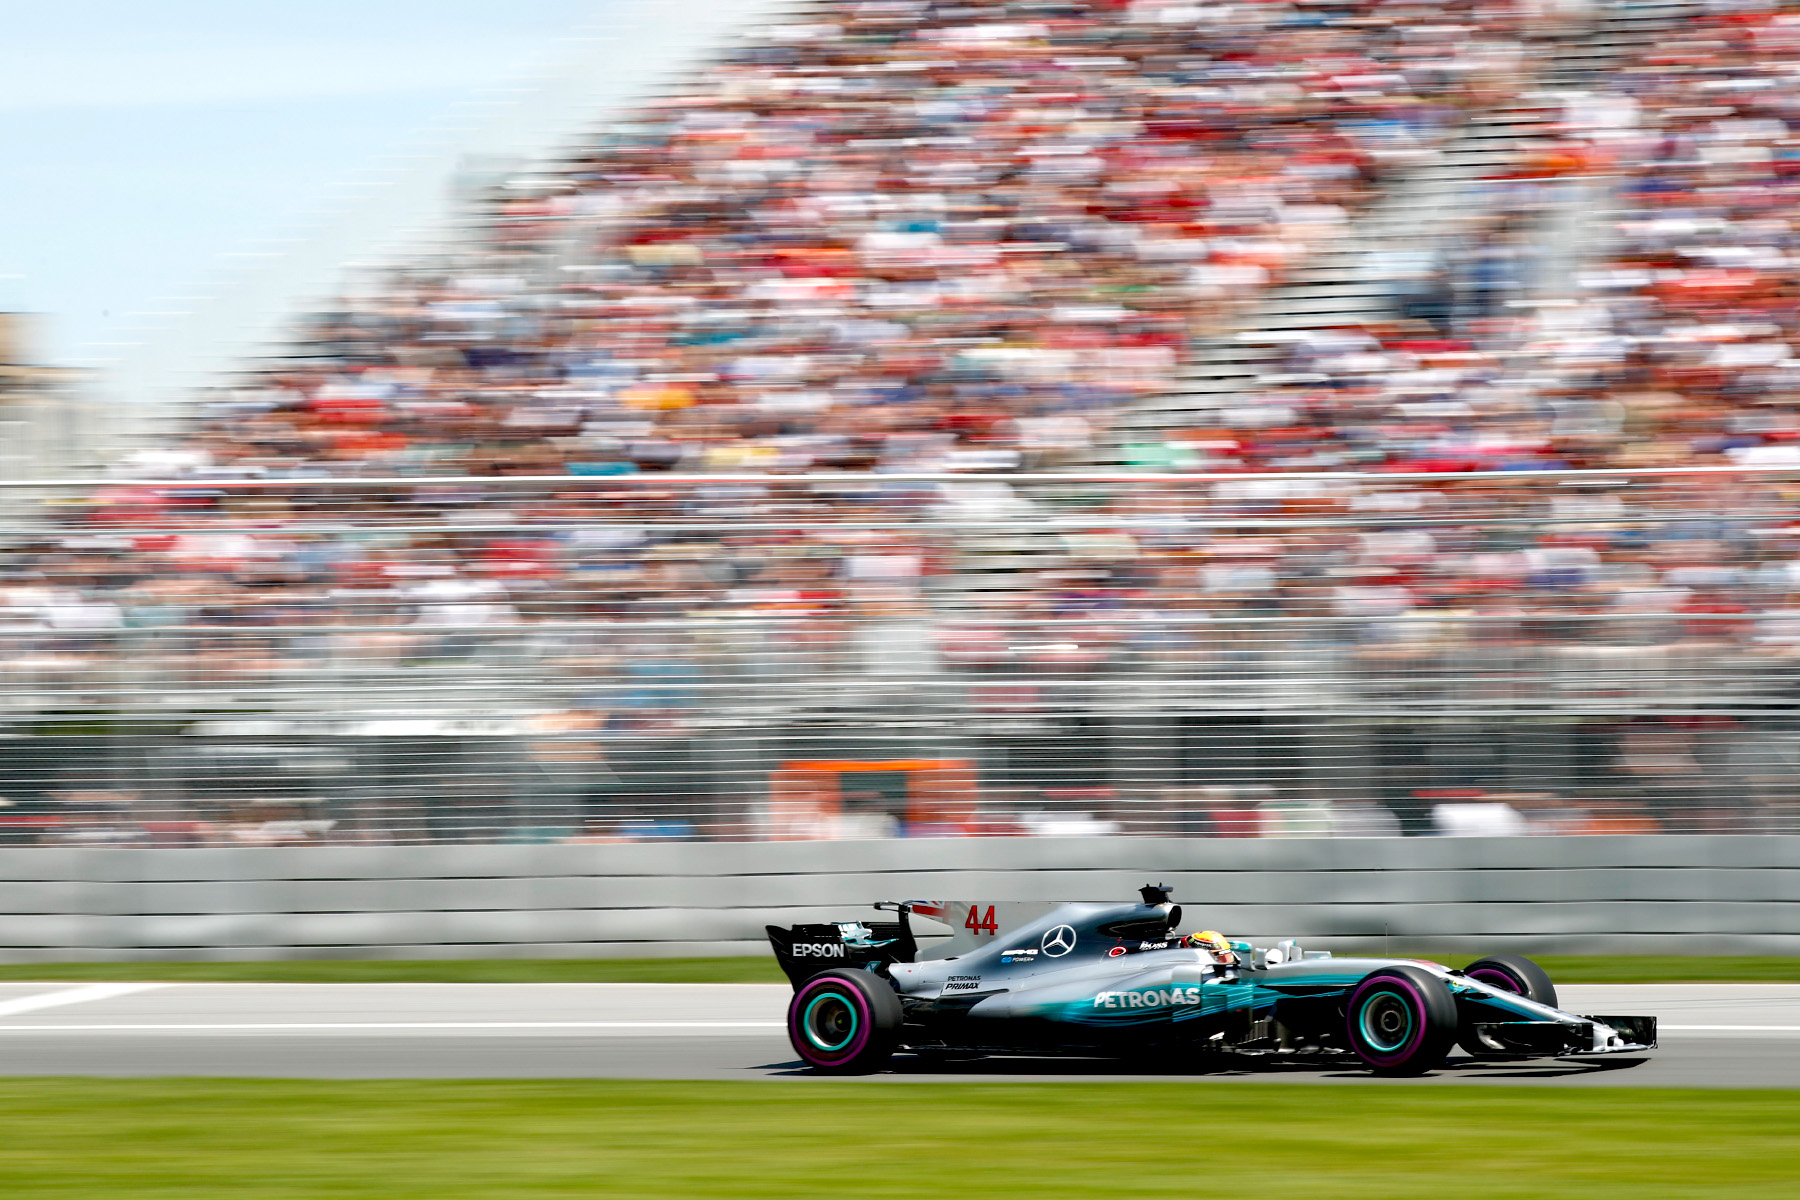 Lewis Hamilton in his Mercedes at the 2017 Canadian Grand Prix